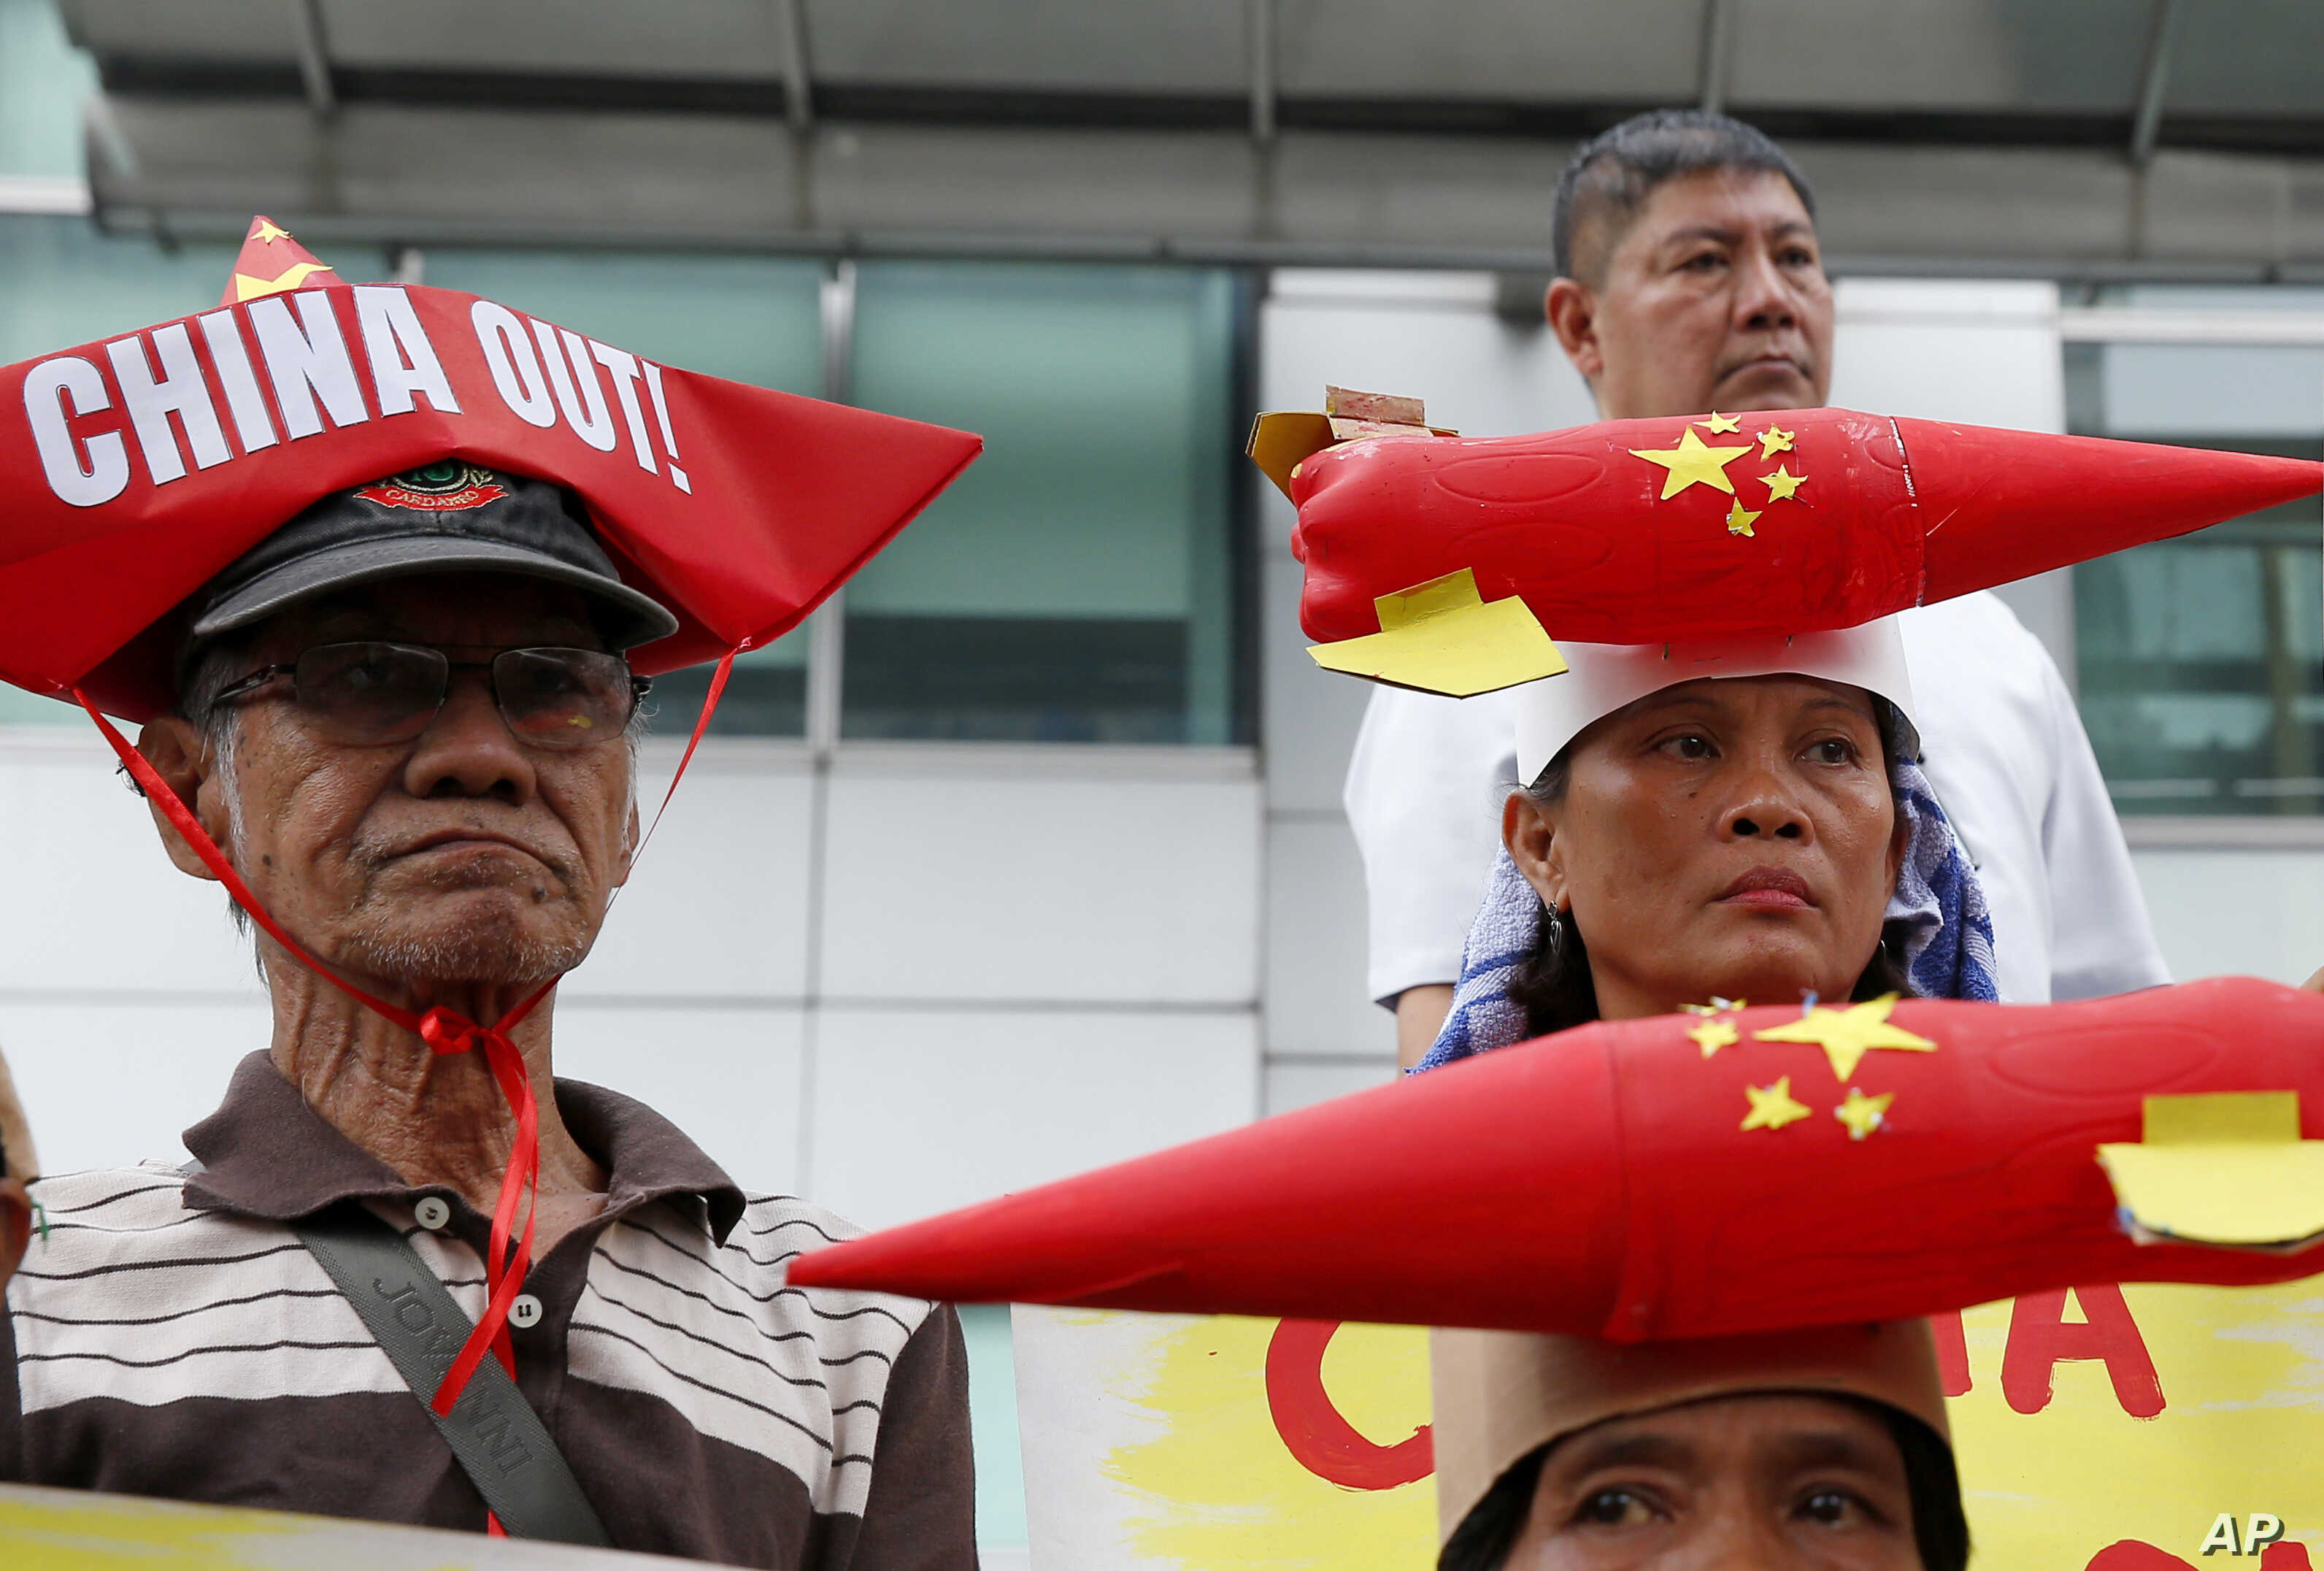 Protesters, wearing boat-shaped paper hats and mock missiles, join others in a rally at the Chinese Consulate to protest China's alleged continued militarization of the disputed islands in the South China Sea known as Spratlys, Feb. 10, 2018, in Maka...